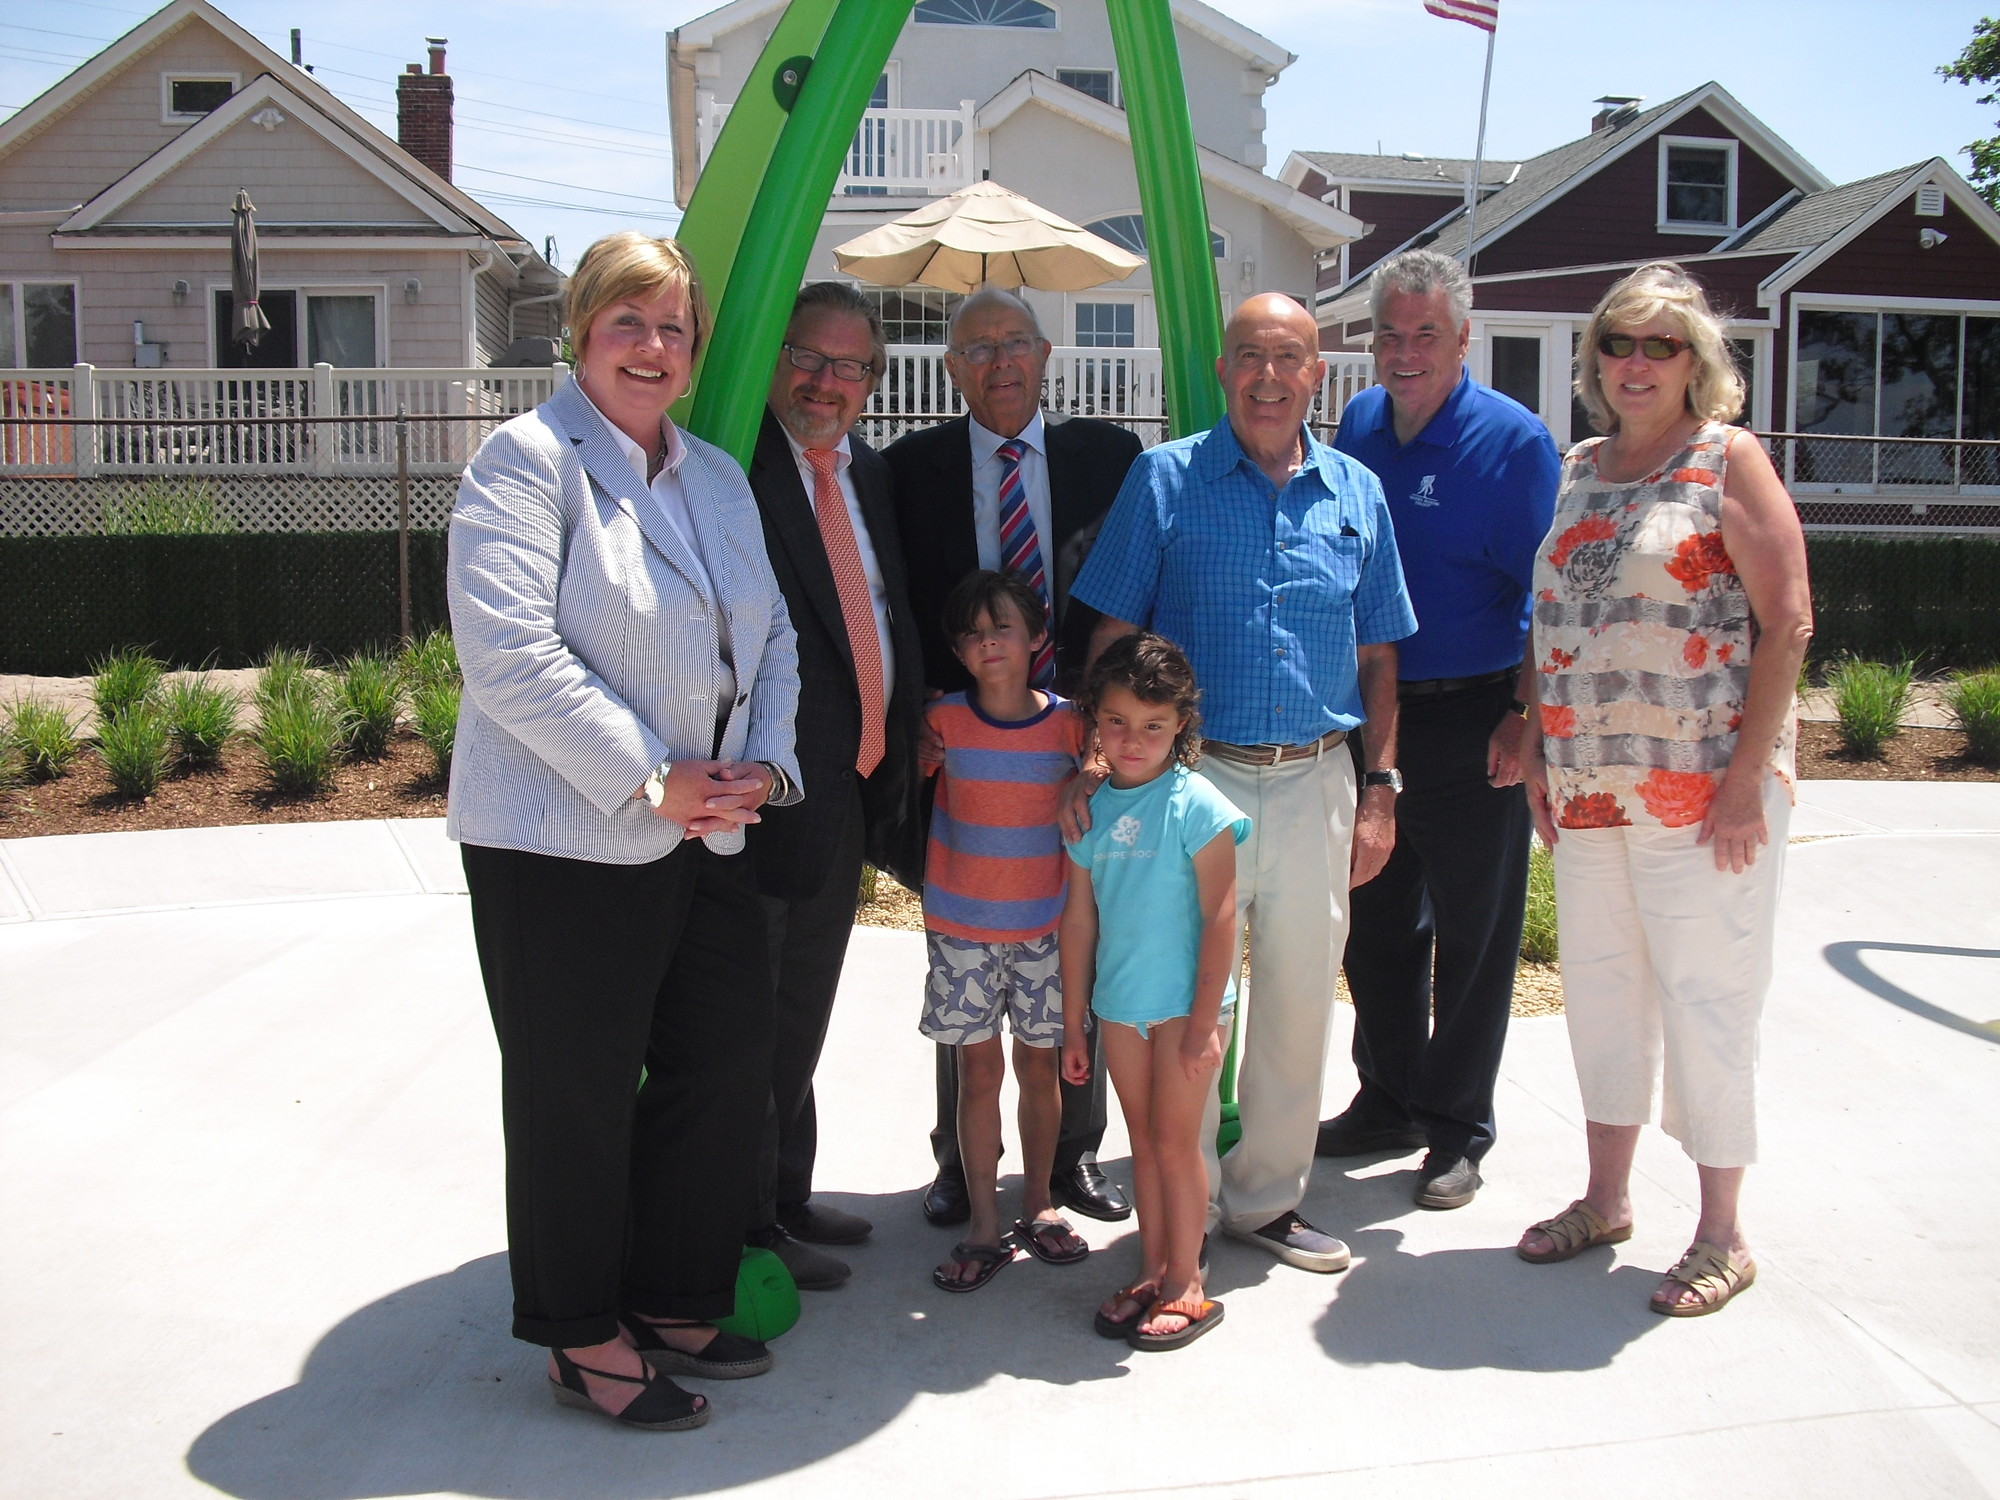 Town of Hempstead Supervisor Kate Murray, left, with Island Park Mayor Michael McGinty, Senator Alfonse D'Amato, former Assemblyman Armand D'Amato, Congressman Peter King and Nassau County Legislator Denise Ford. Front row: Alfonso and Luciana D'Amato at the splash park opening.